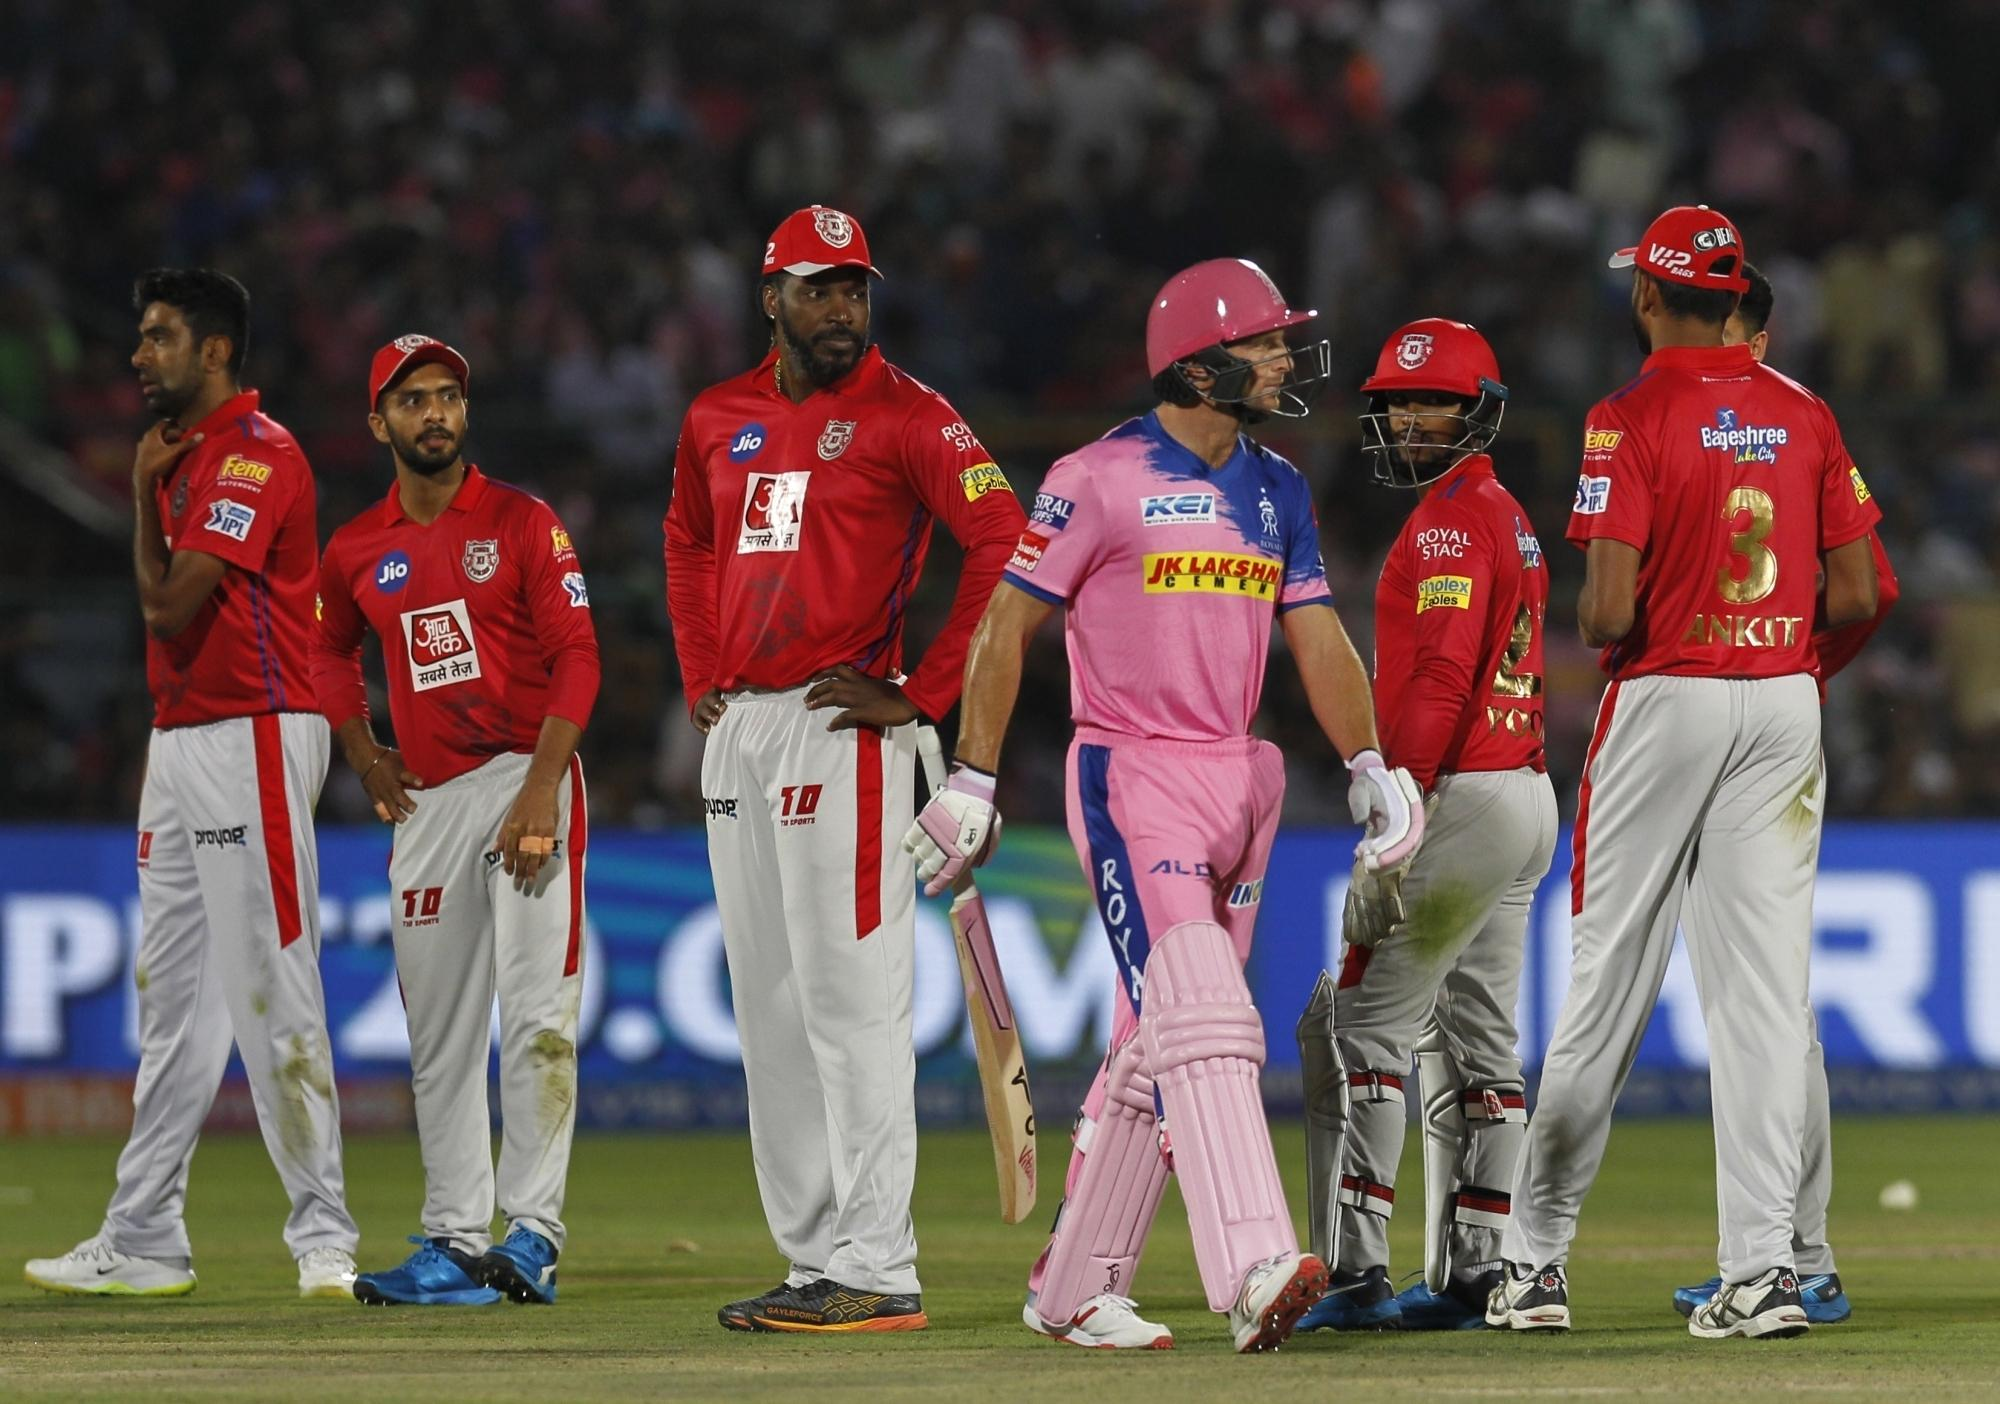 R Ashwin runs out Jos Buttler during their 2019 Indian Premier League (IPL) match